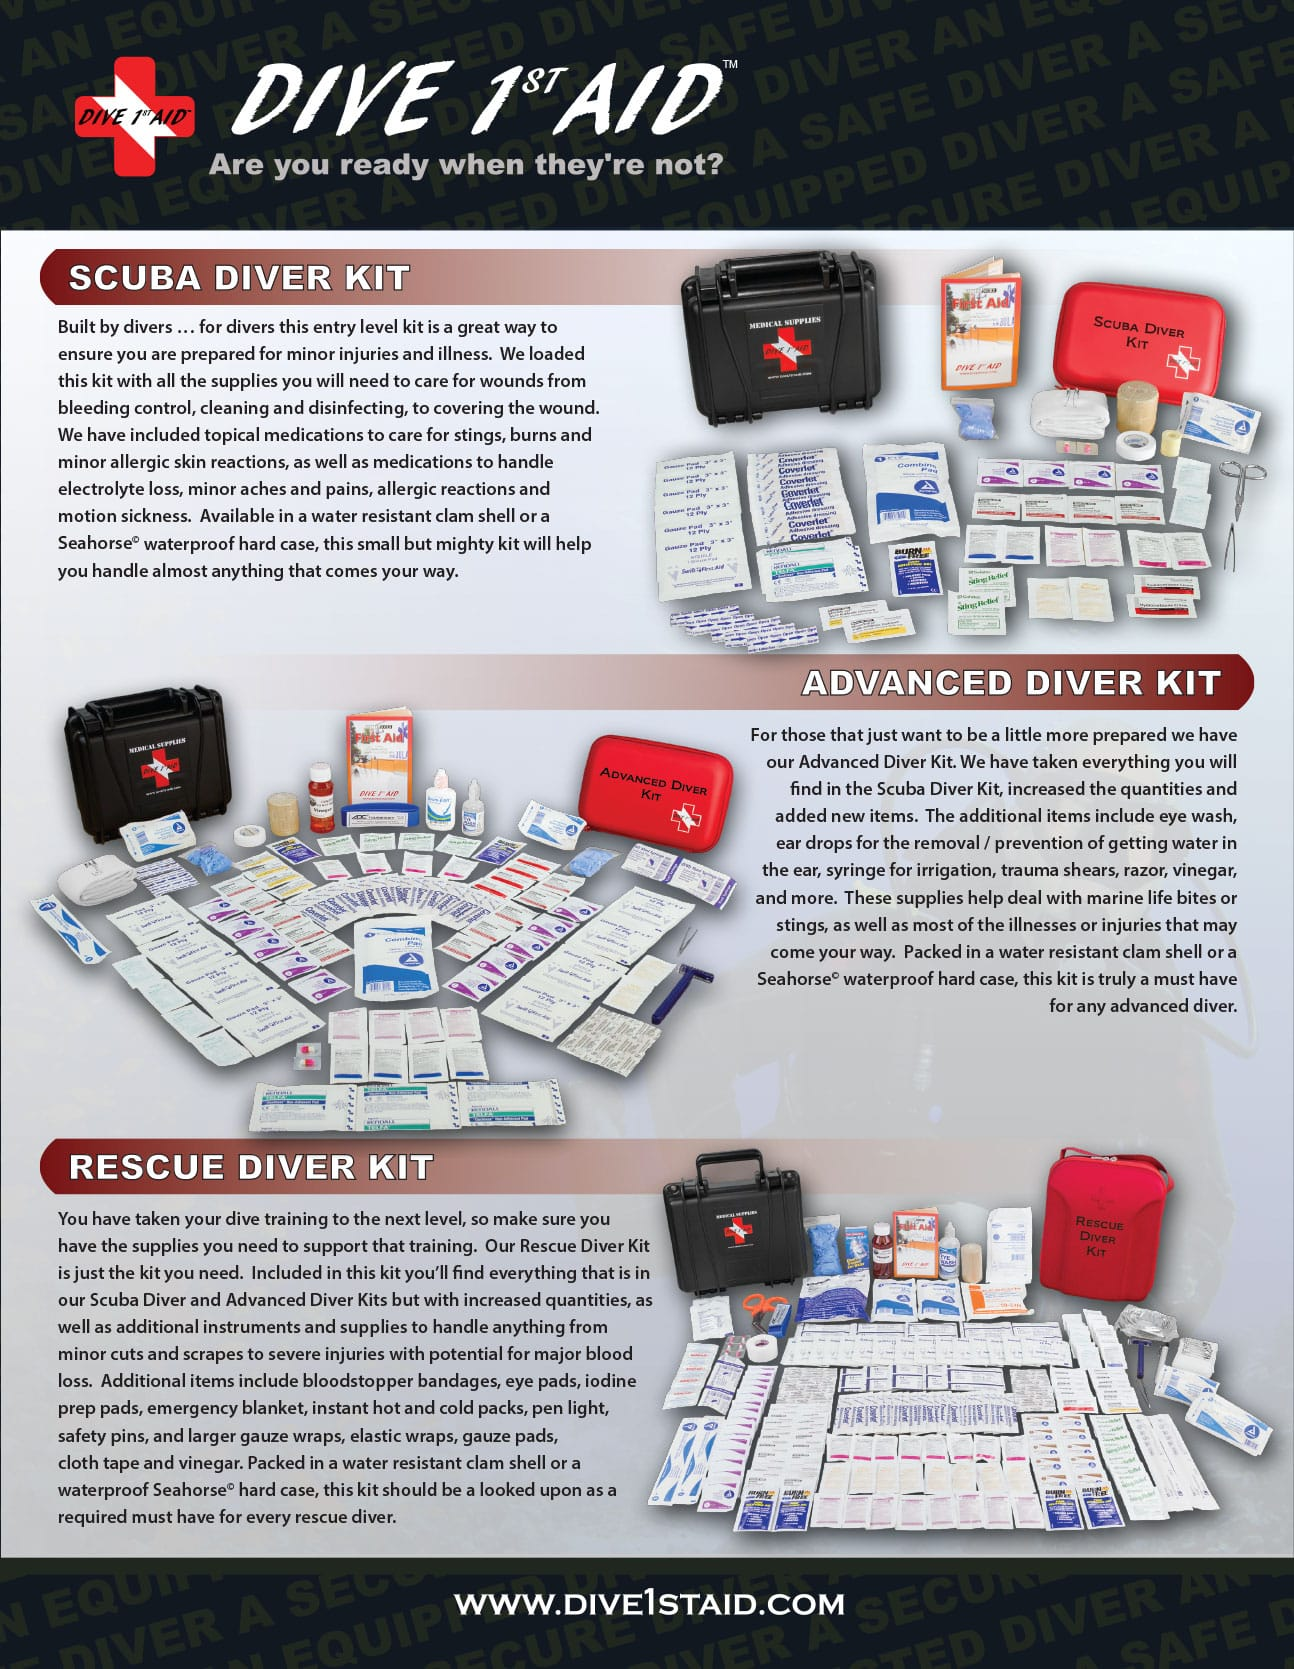 Professional 1st Aid kits for Advanced and Rescue Scuba Divers